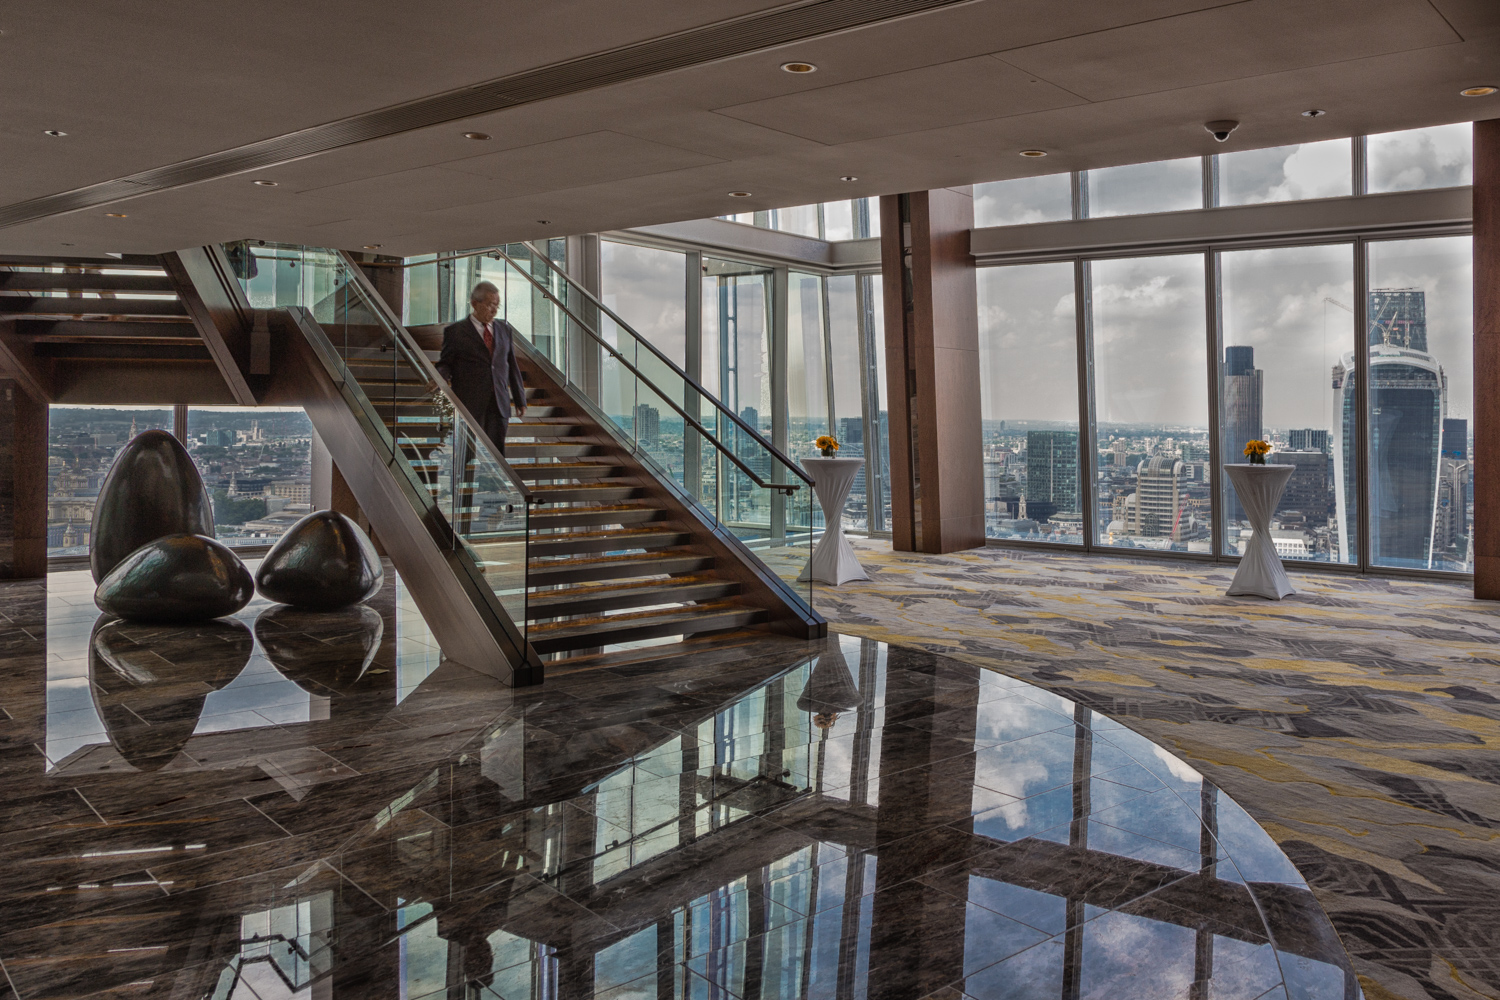 The London Shard - interior design photographer shot - Nik Colour Efex Detail Extractor